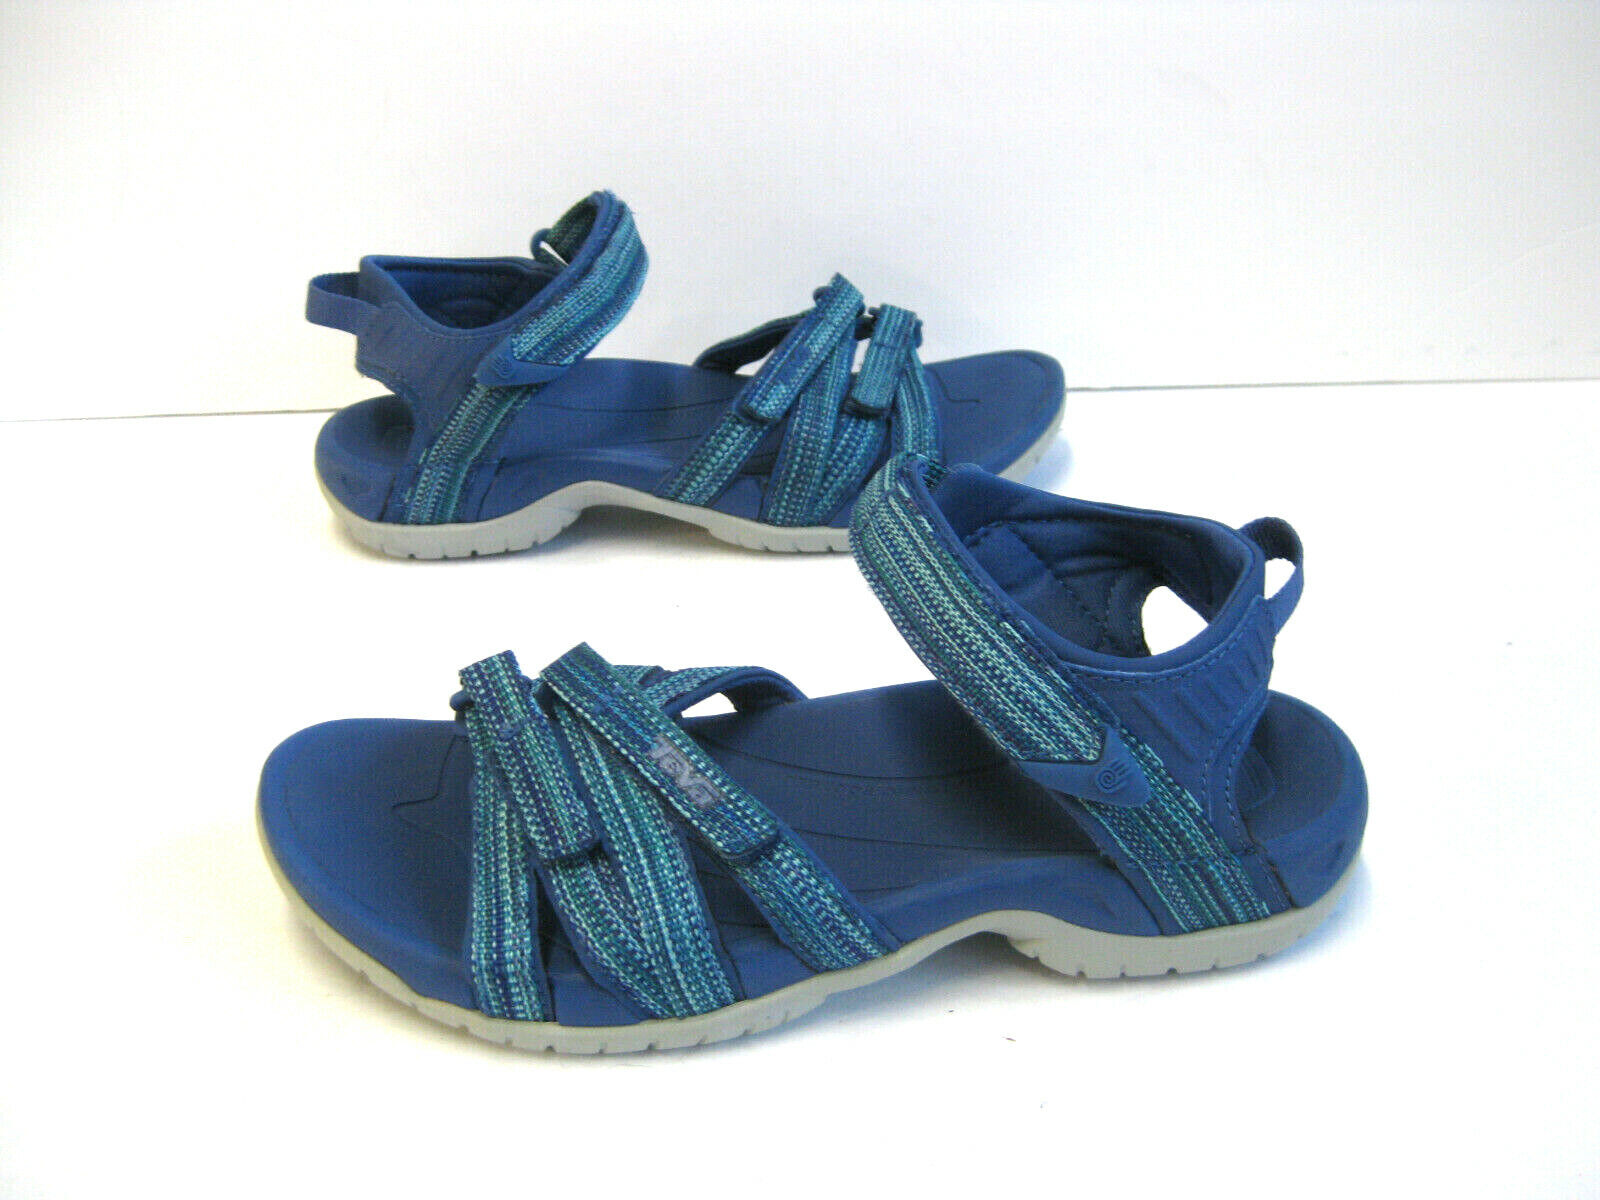 TEVA TIRRA WOMEN SPORT SANDALS GALAXY blueE blueE blueE MUITI US 7  UK 5  EU 38  JP 24 654393